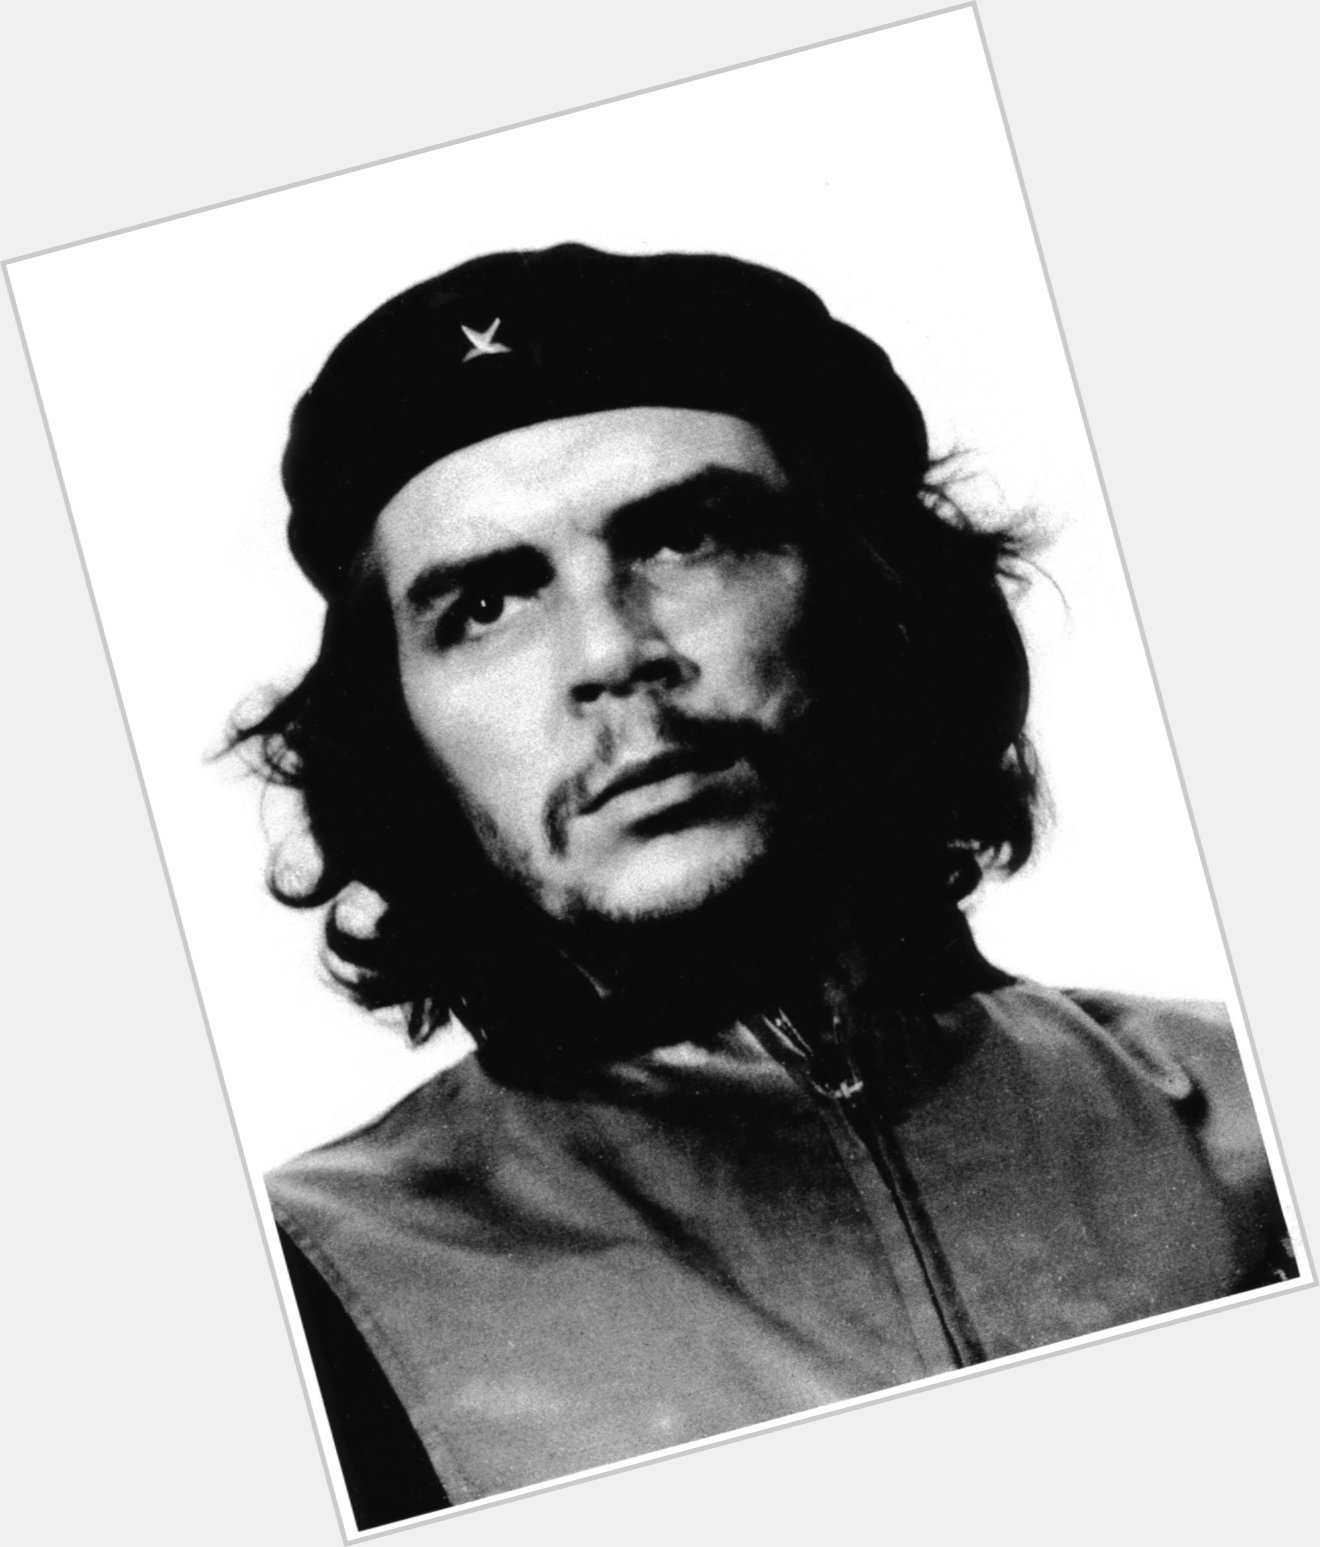 che guevara essays Ernesto guevara first was nick named 'che', which is italian for pal the group invaded cuba, where che was che guevara essay che guevara was a key personality who played a pivotal role not only in the revolutionary movement's seizure of power in 1959 but also in the social revolution which.